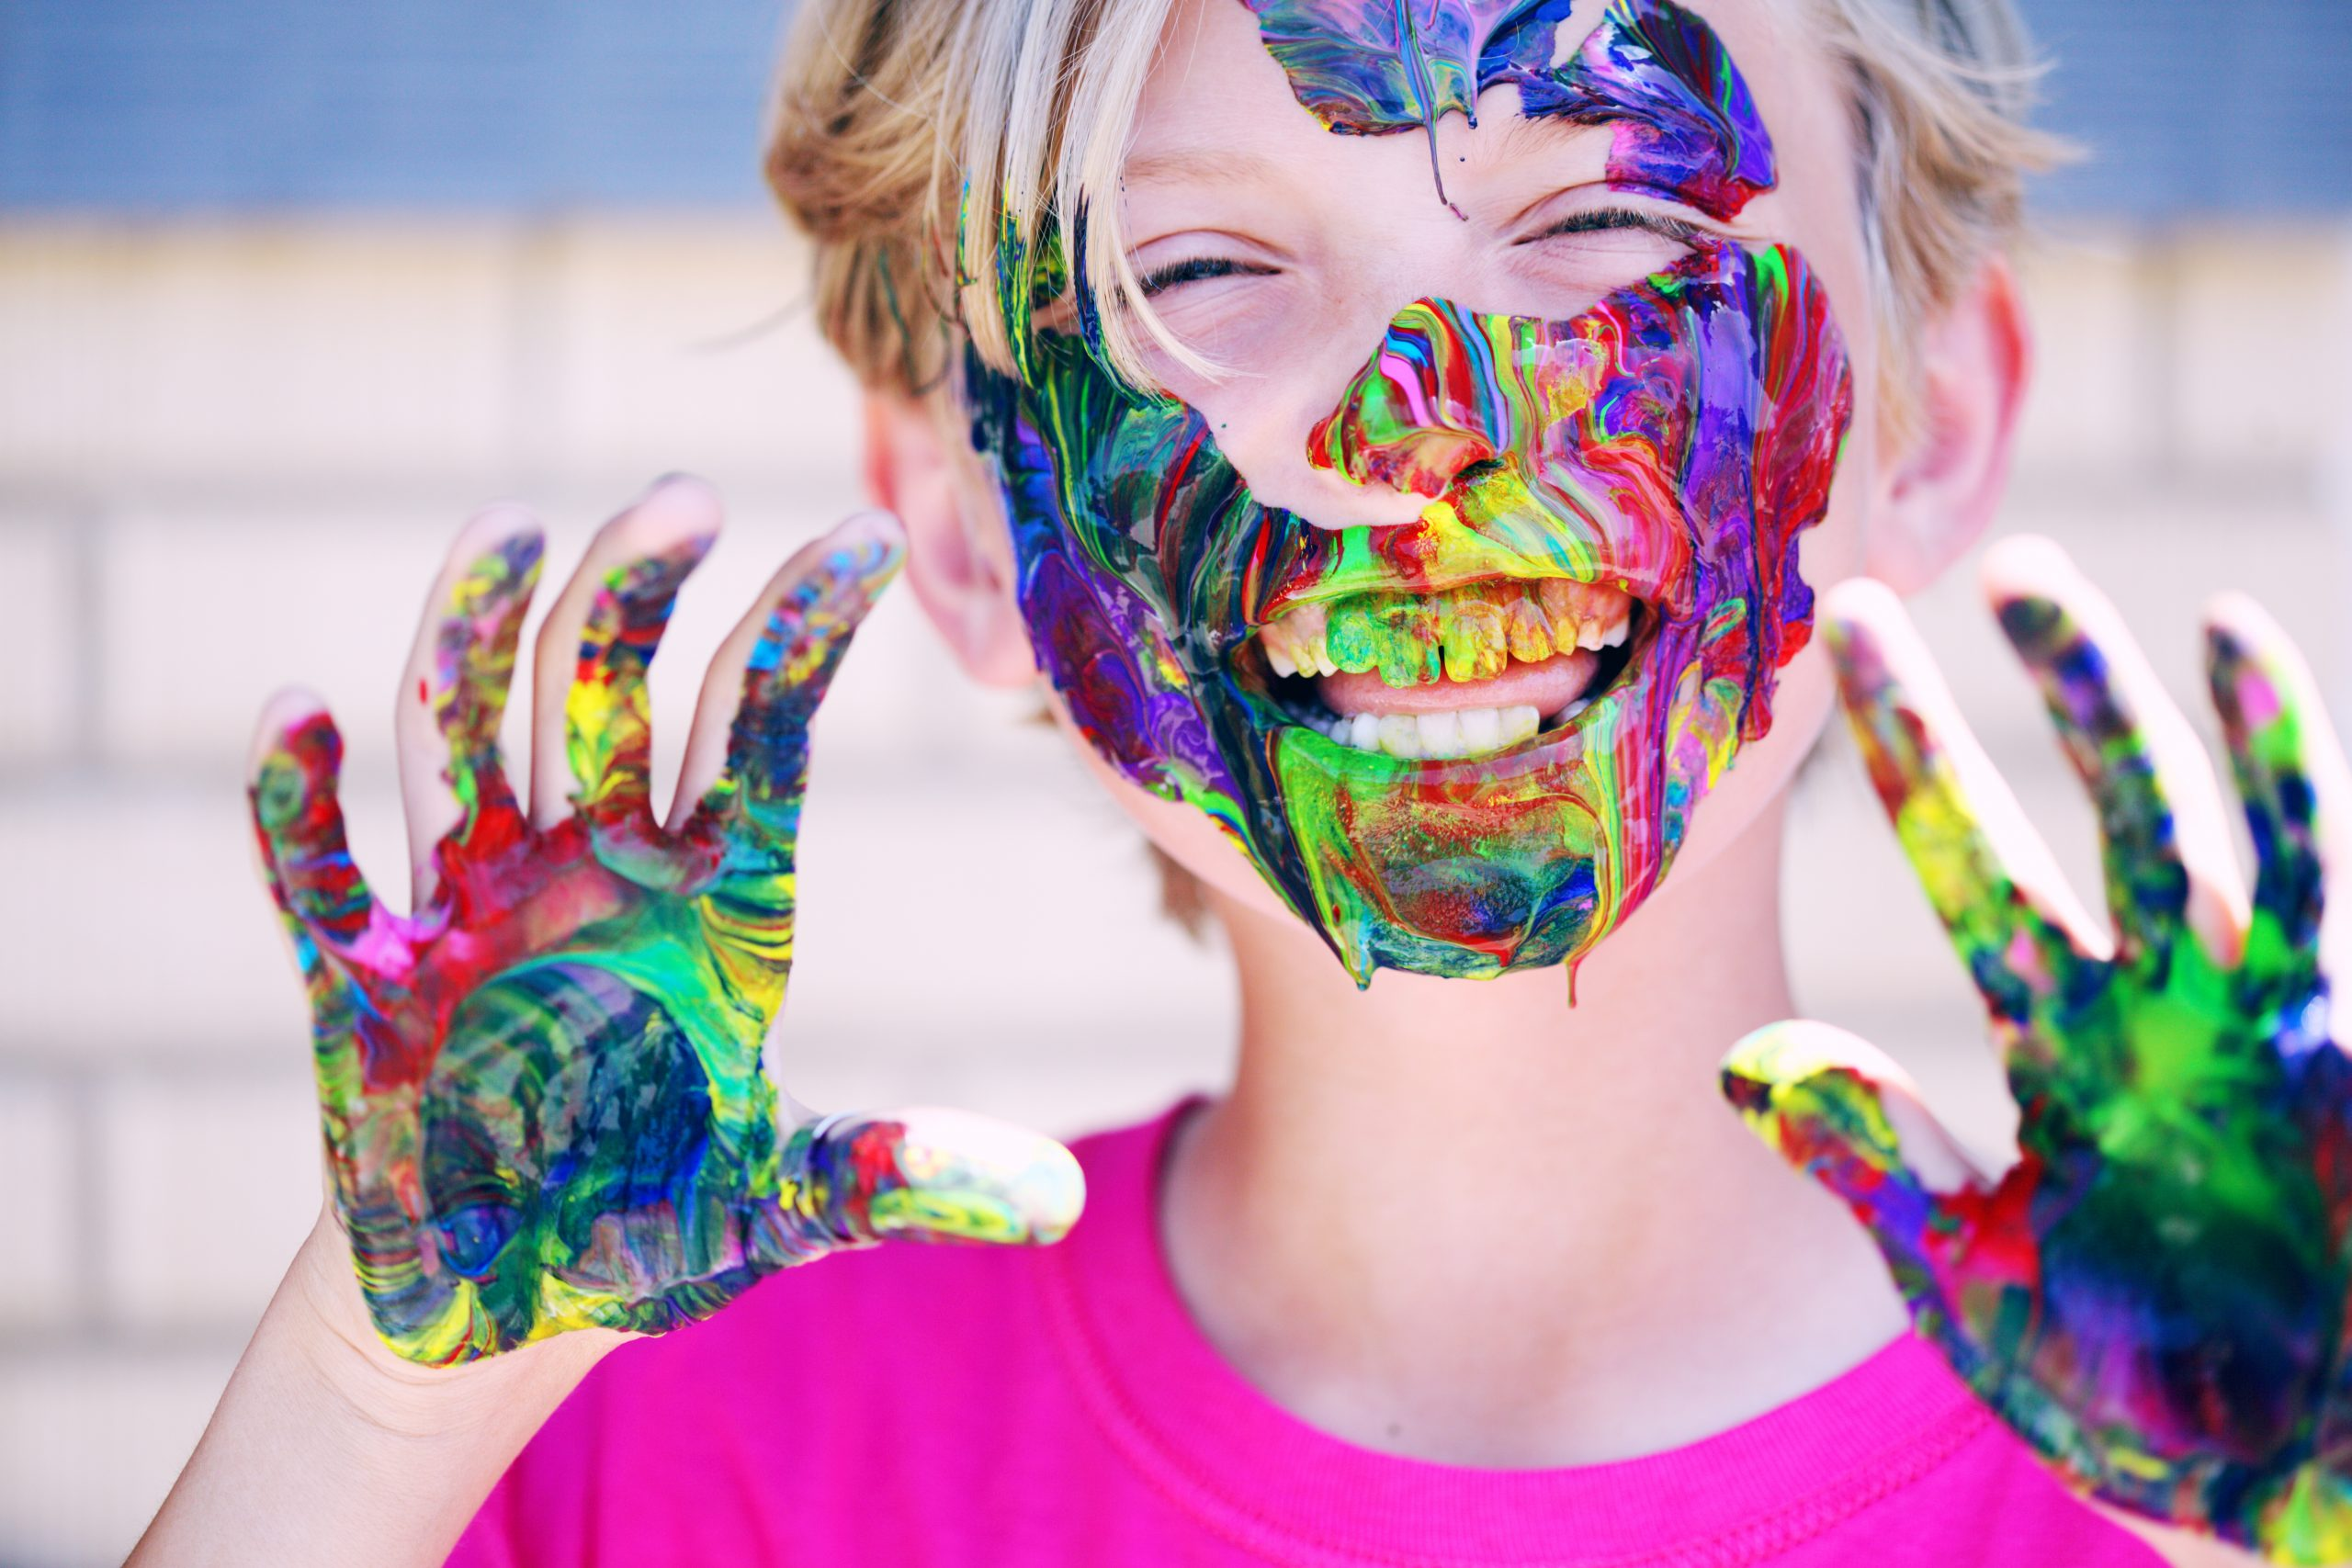 Boy With Paints on His Hands and Face scaled - 13 Fun Family Activities at Home For Everyone